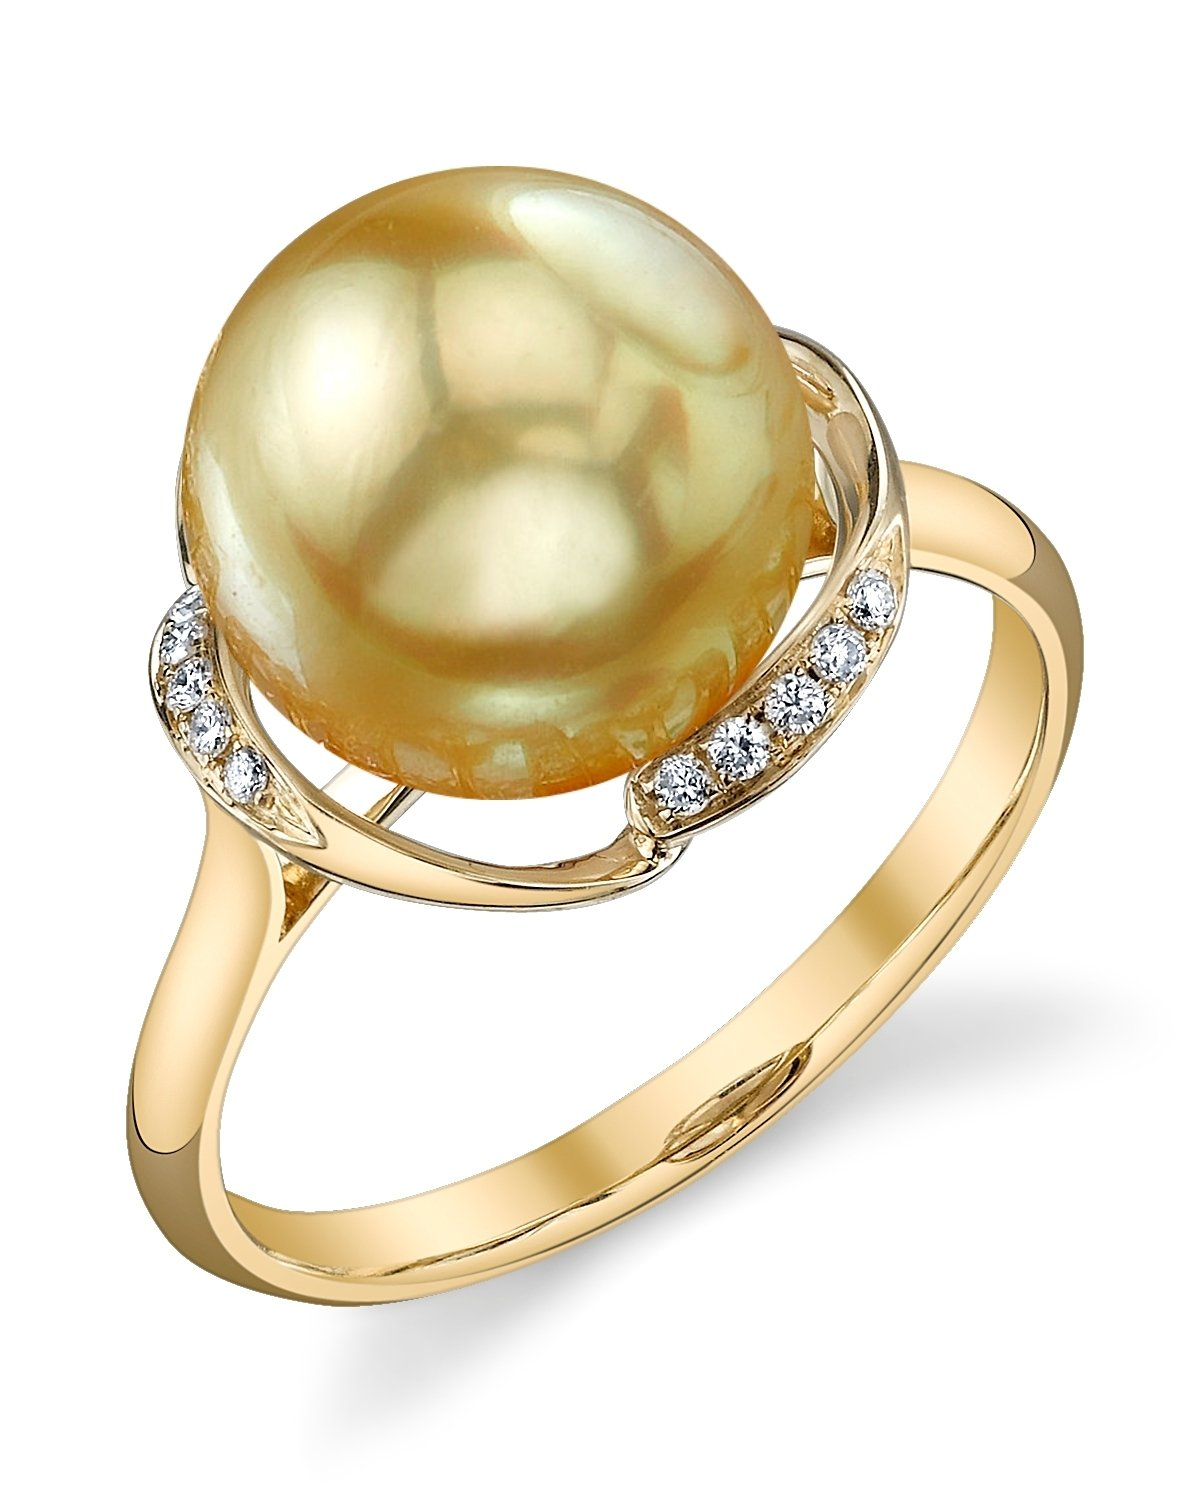 10mm Golden South Sea Cultured Pearl & Diamond Ruby Ring in 14K Gold